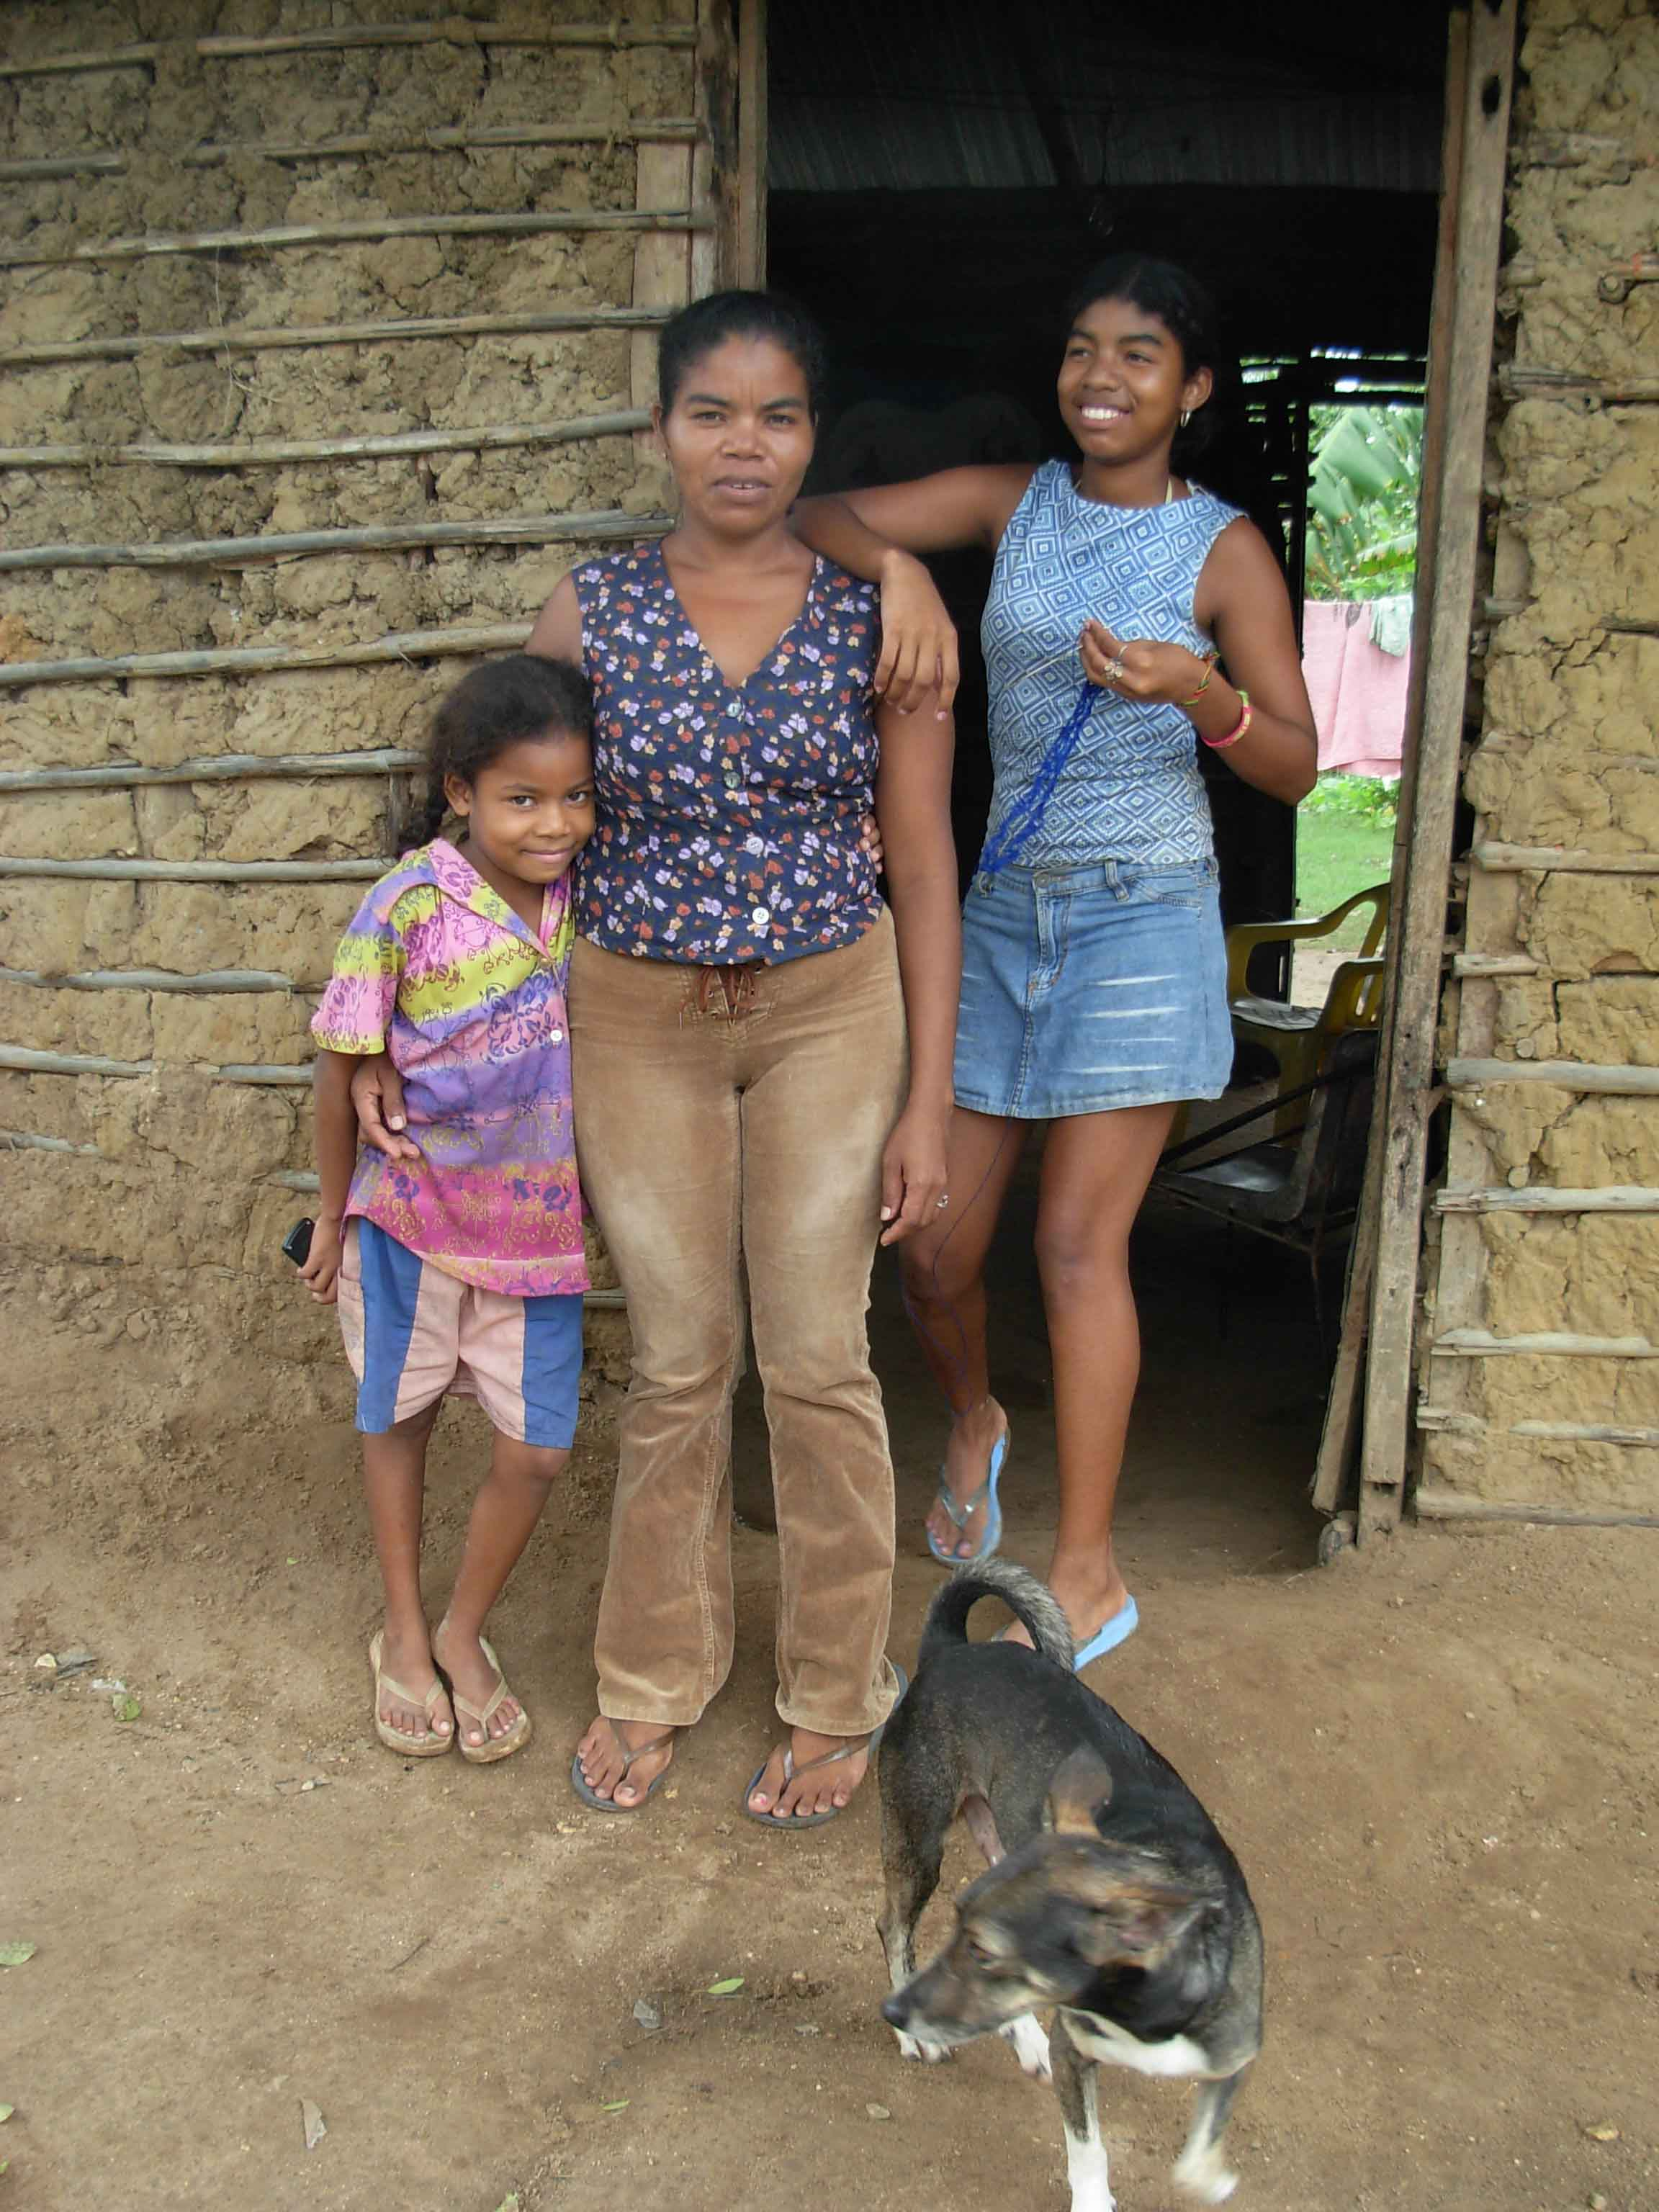 Alberis Peralta and her children were displaced by Colombia's armed conflict and now live in Arjona, an imporverished community outside Cartagena on Colombia's northern coast